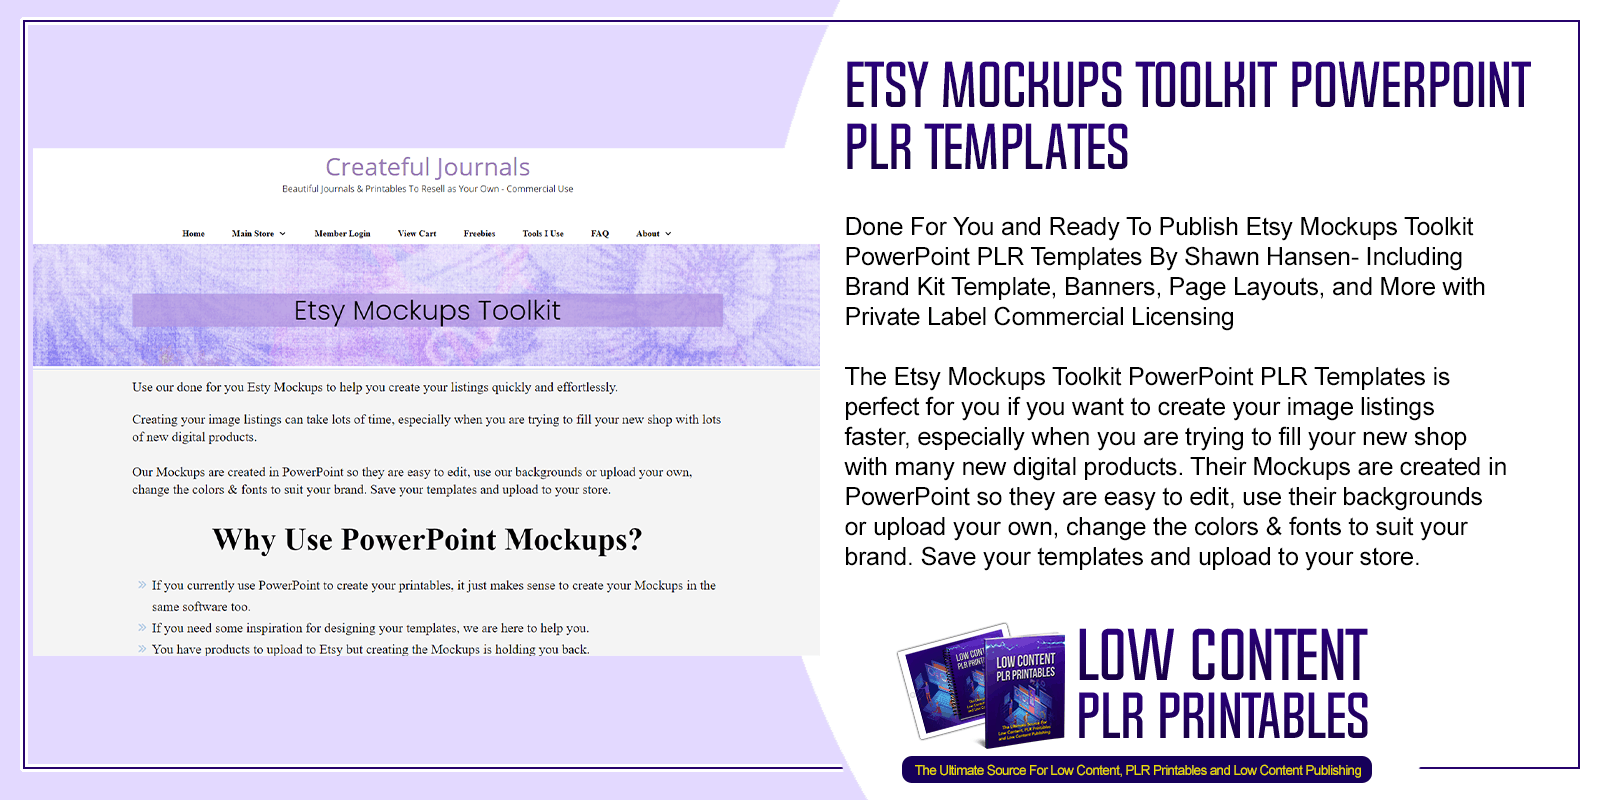 Etsy Mockups Toolkit PowerPoint PLR Templates